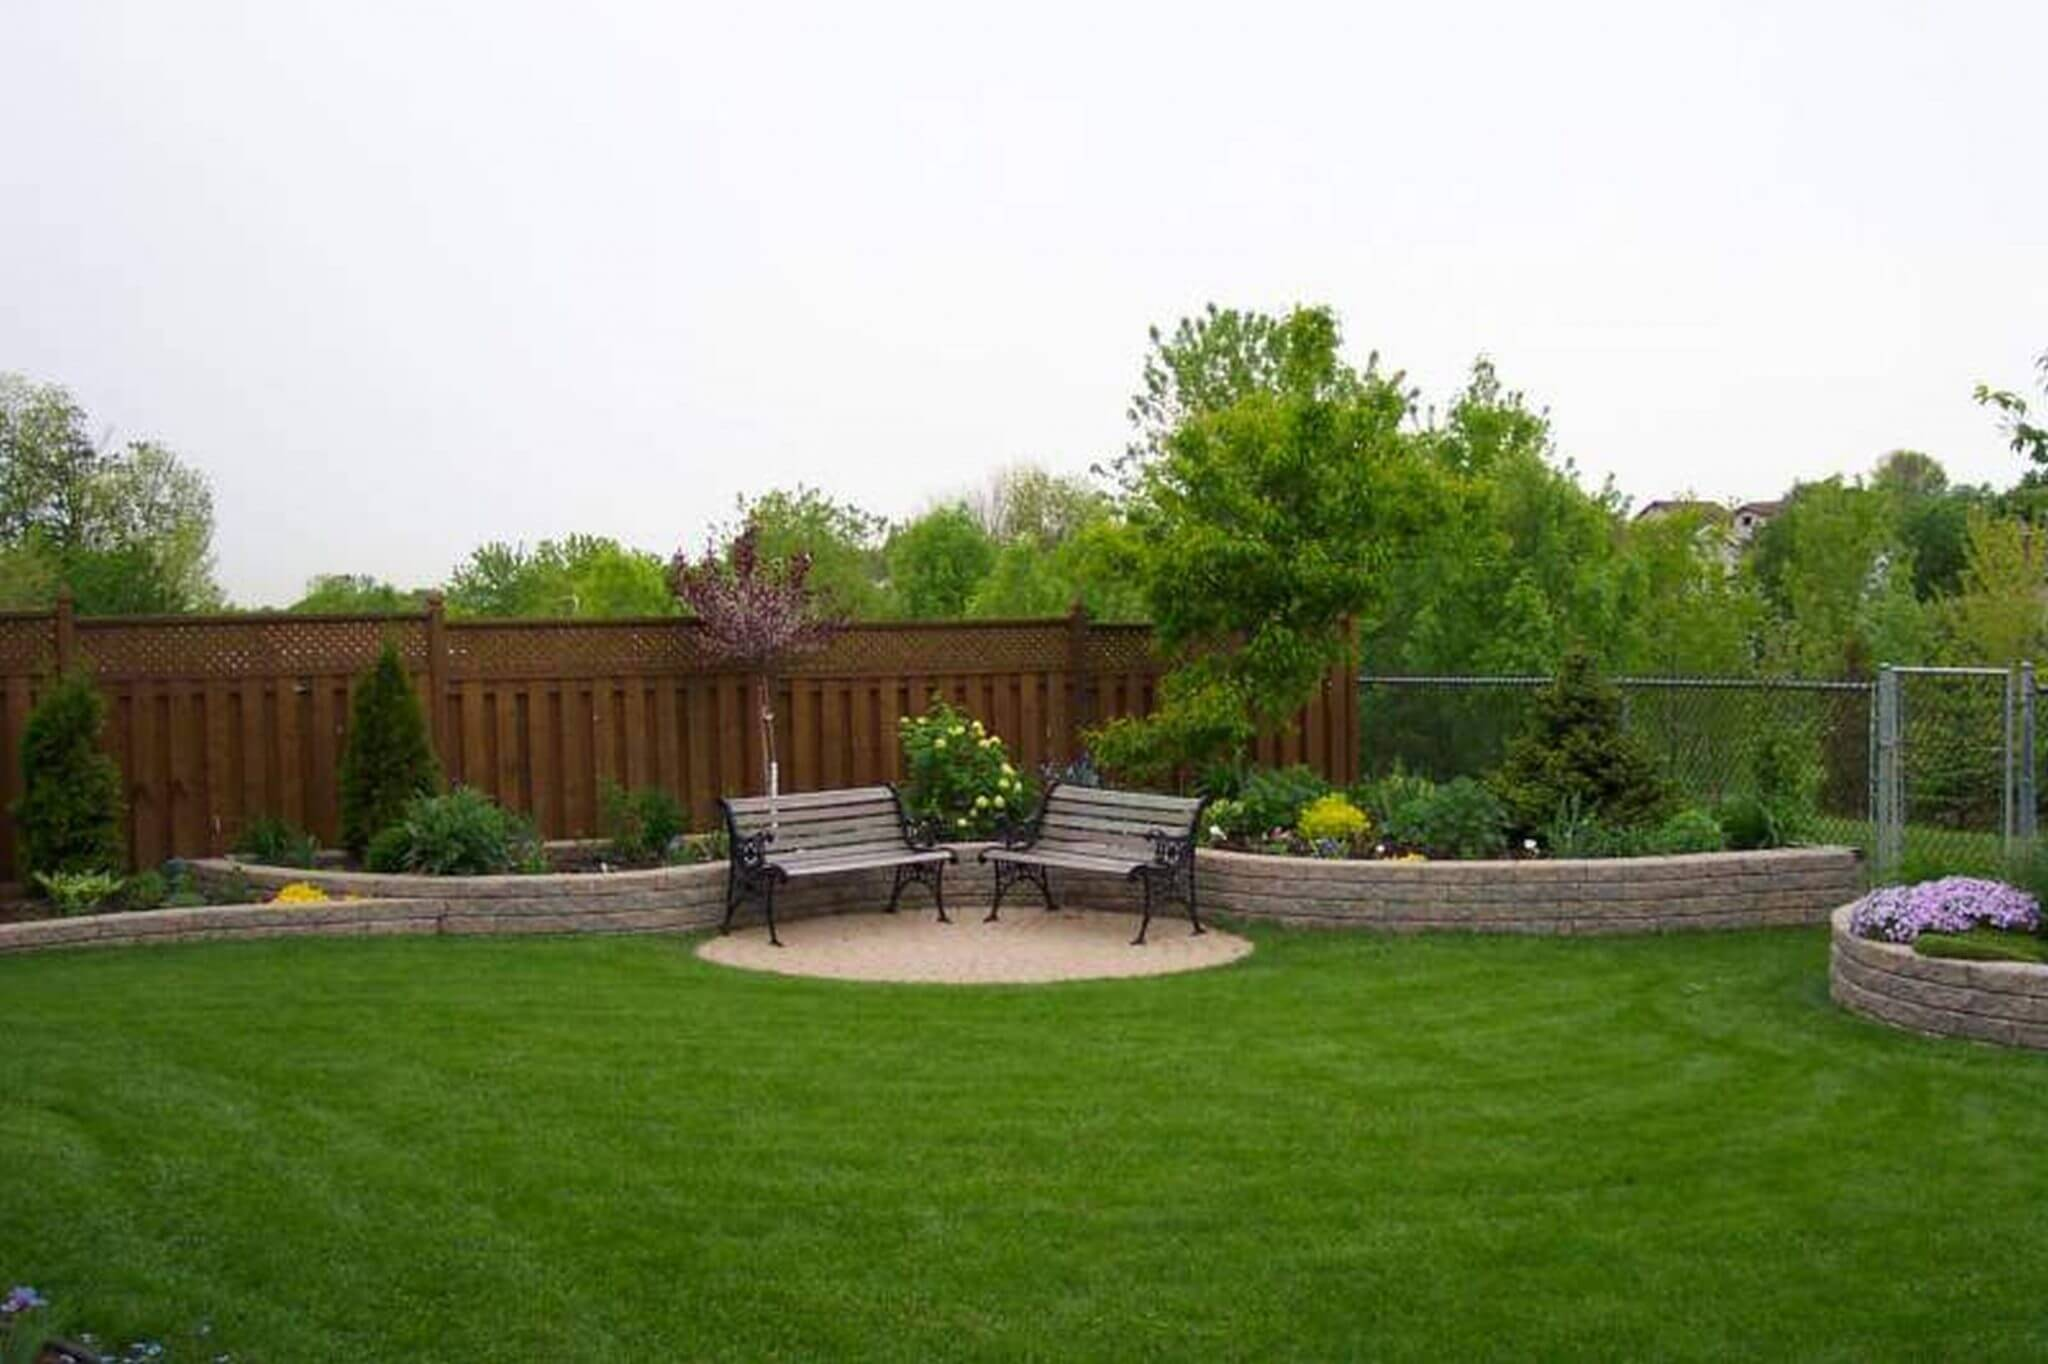 Plants good for adding privacy to your home - Gainesville, FL on Best Backyard Landscaping id=22875